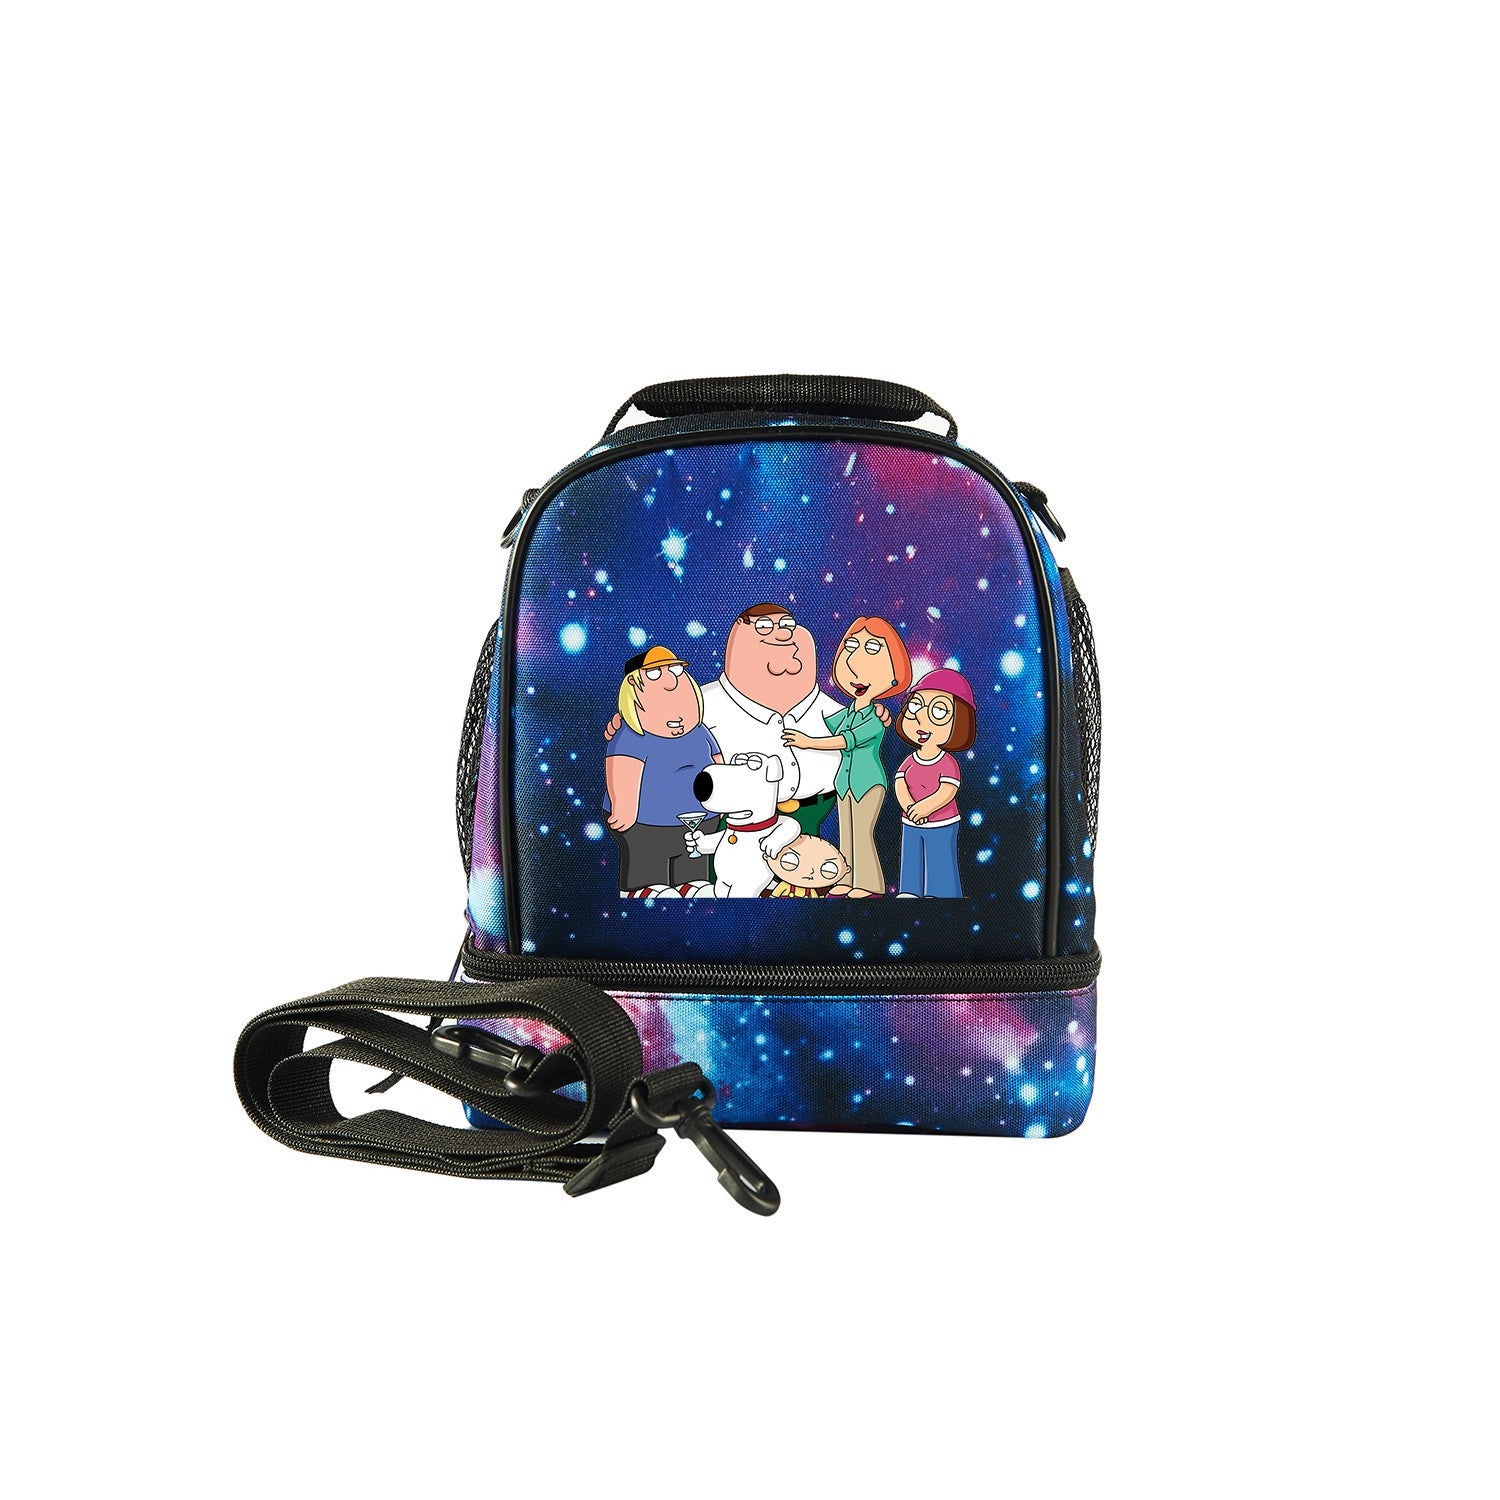 2109 New Family Guy Logo Fashion Two Compartment Lunch Bag